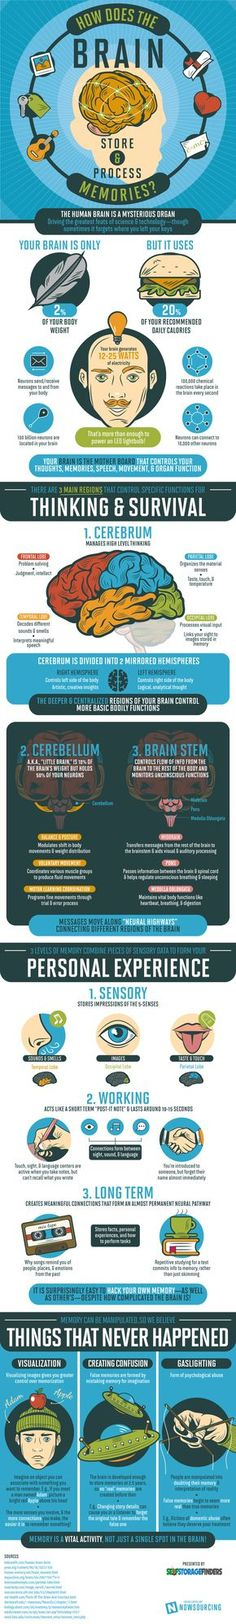 How Your Brain Stores and Processes Memories #Infographic #Brain